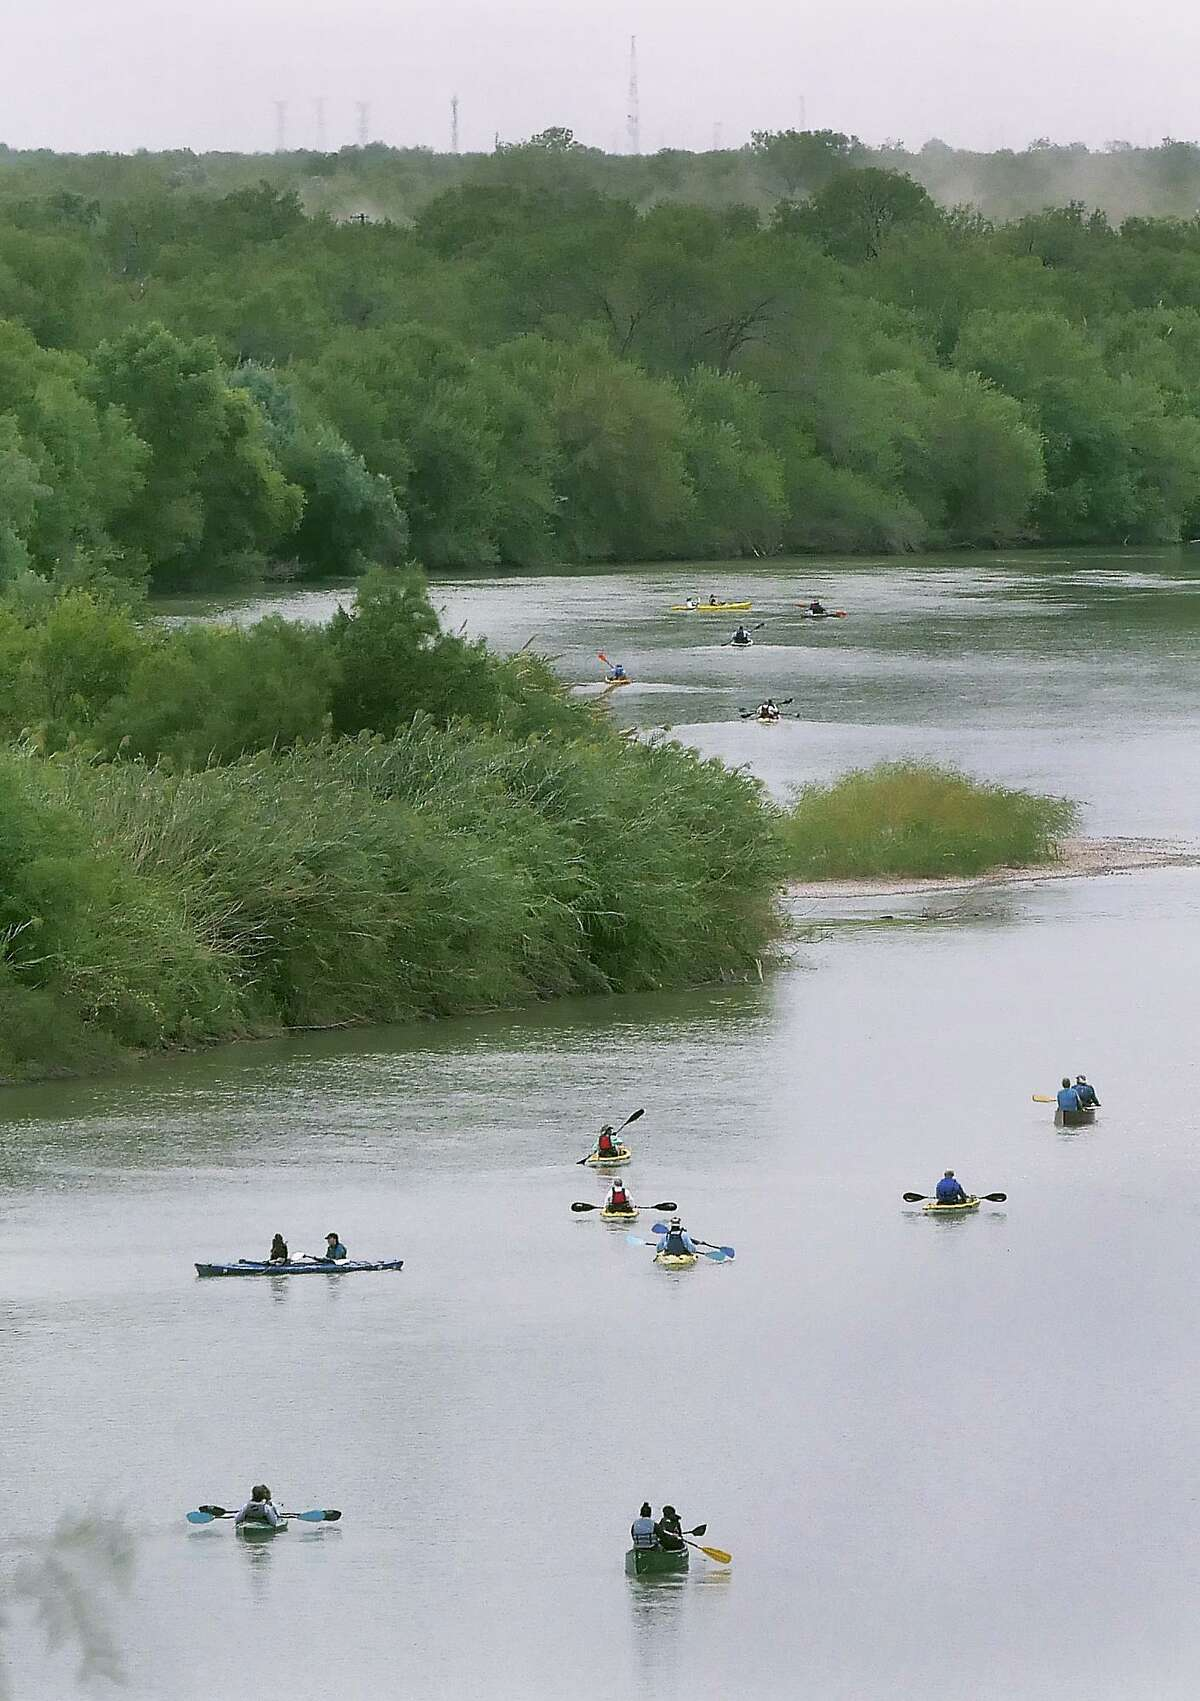 More than 70 people and one dog participated the 3rd Community Paddle on the River Saturday, October 12, 2019. Part of the 25th Annual Dia del Rio celebration, the event, hosted by the Rio Grande International Study Center with Councilman George Altgelt providing a light brunch at the Max Golf Course from which the group launched before finishing at the El Pico Water Treatment Plant.